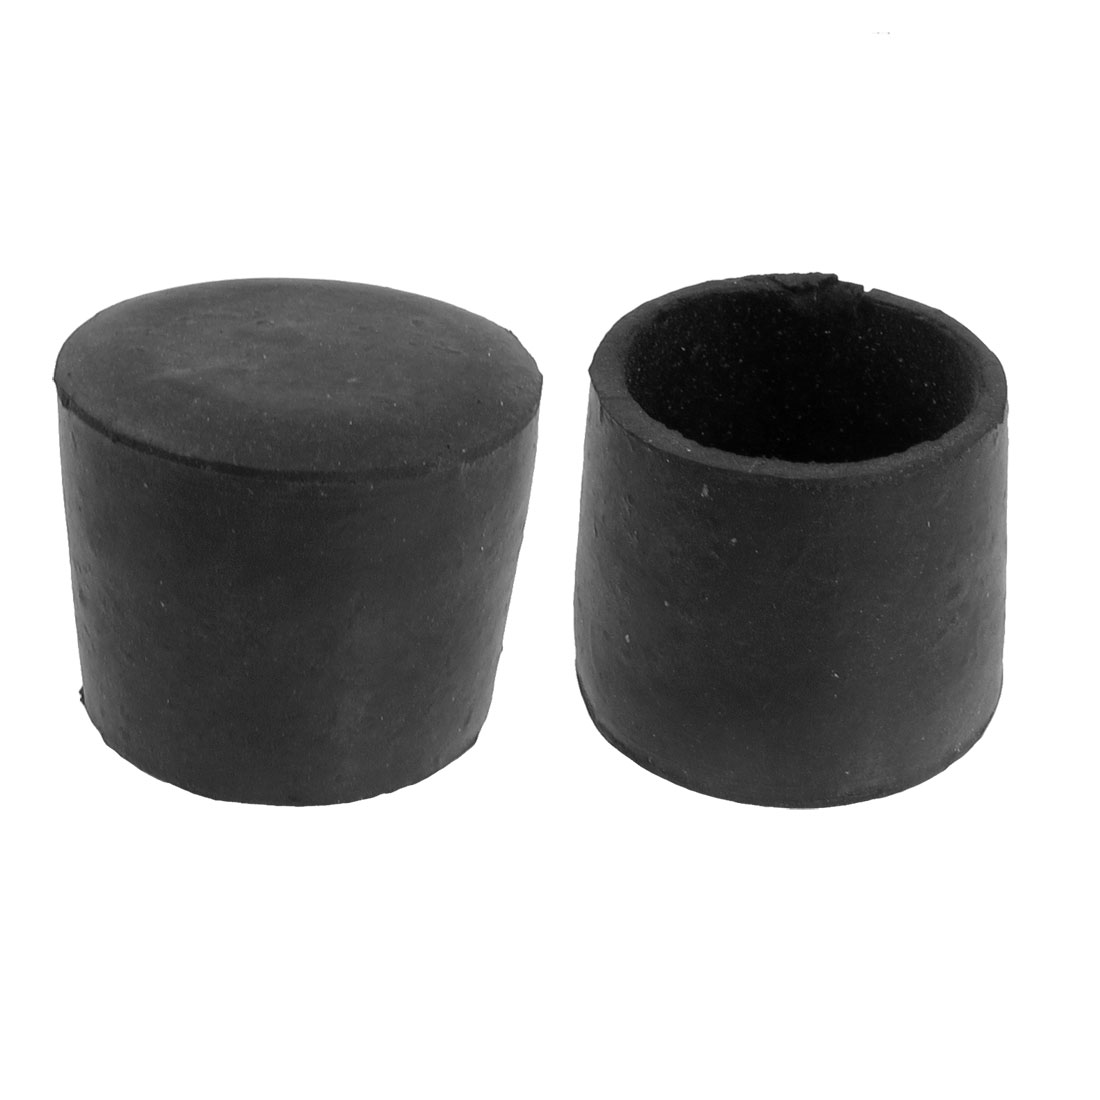 3.7cm Inner Dia Black Rubber Cone Shape Round Table Chair Foot Cover 2 Pcs